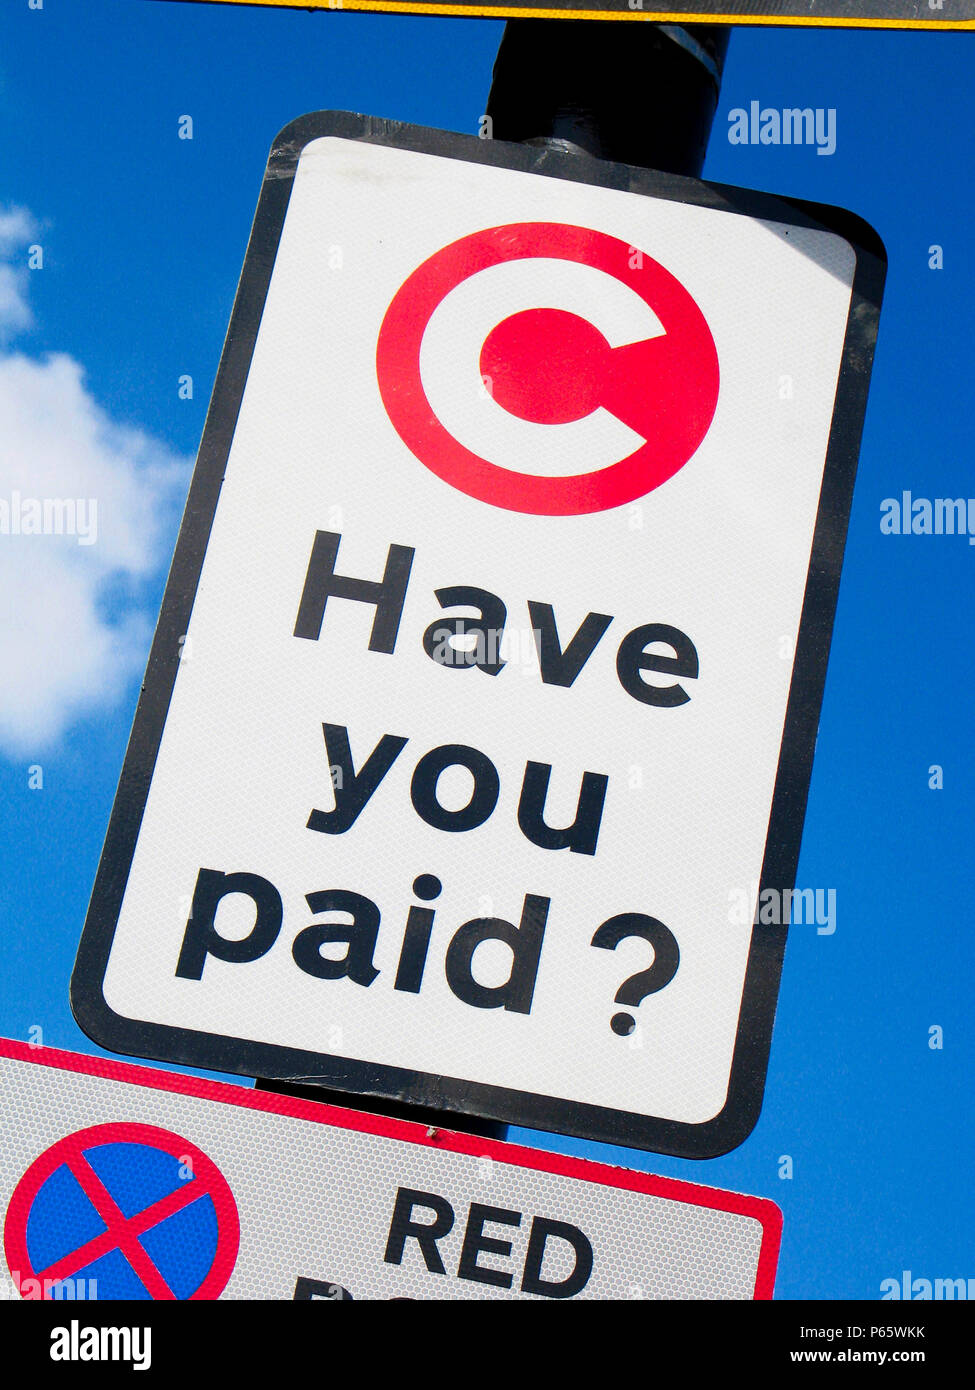 Congestion Charging road sign, central London, United, Kingdom. - Stock Image